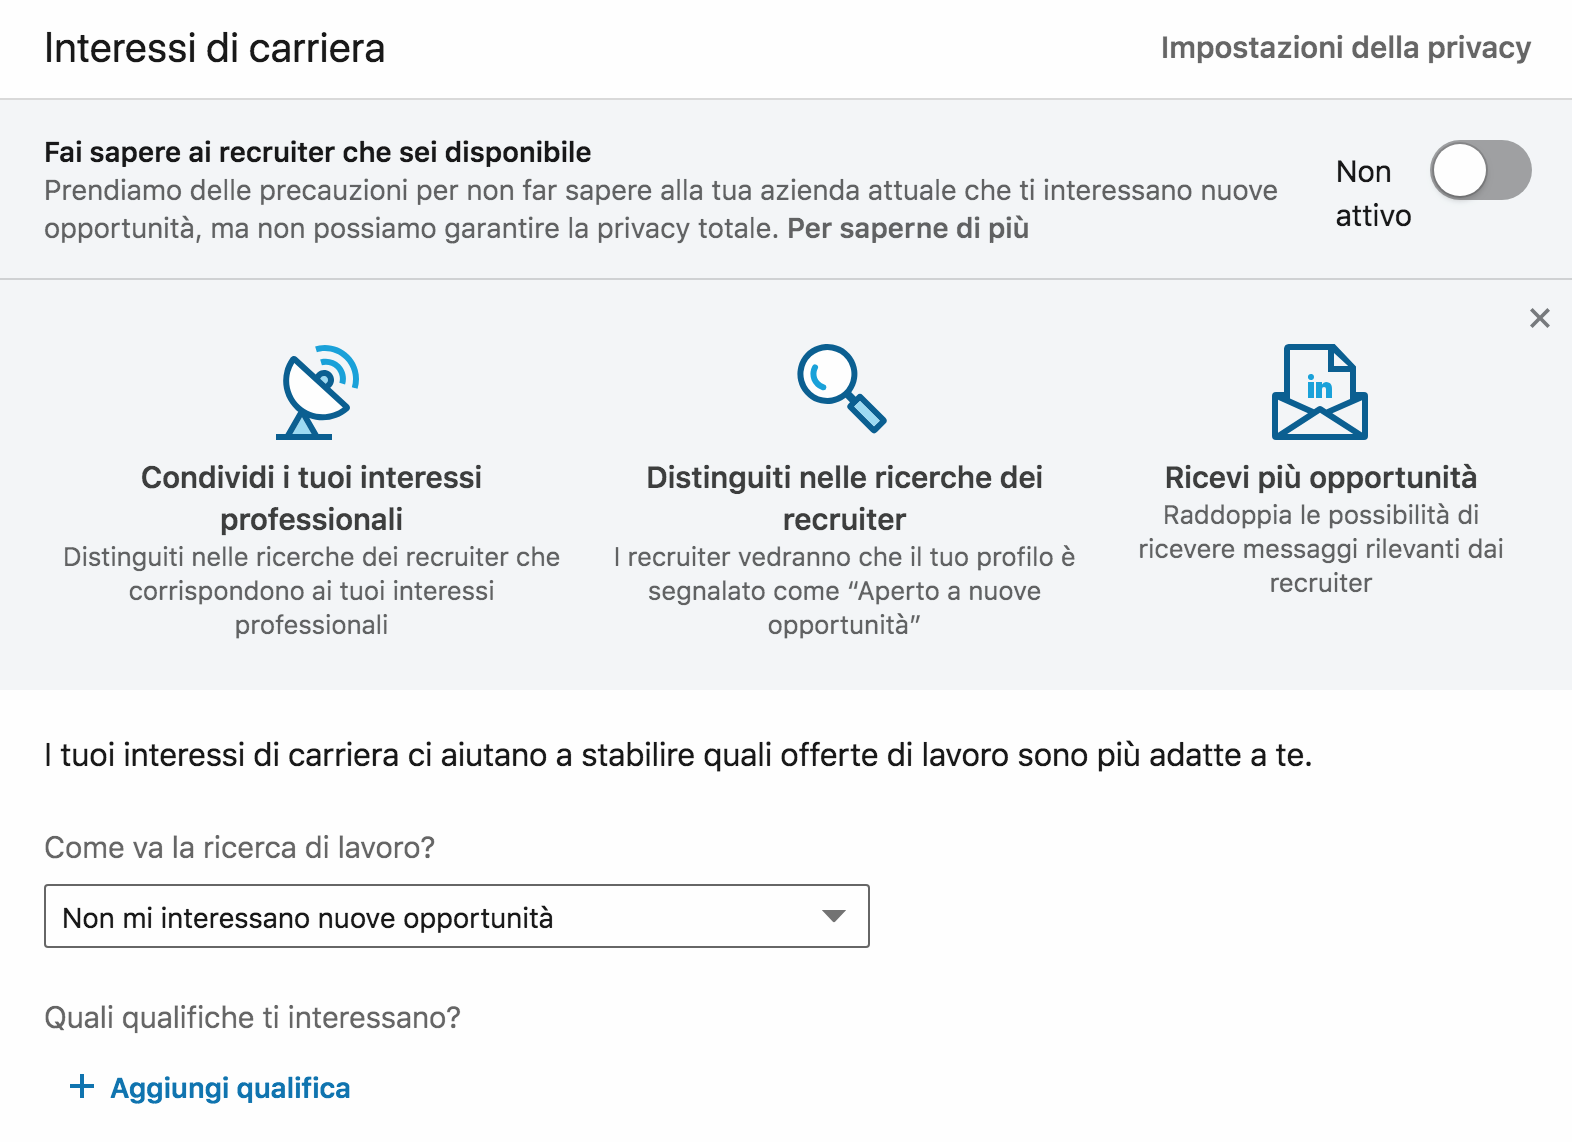 gli interessi di carriera su linkedin